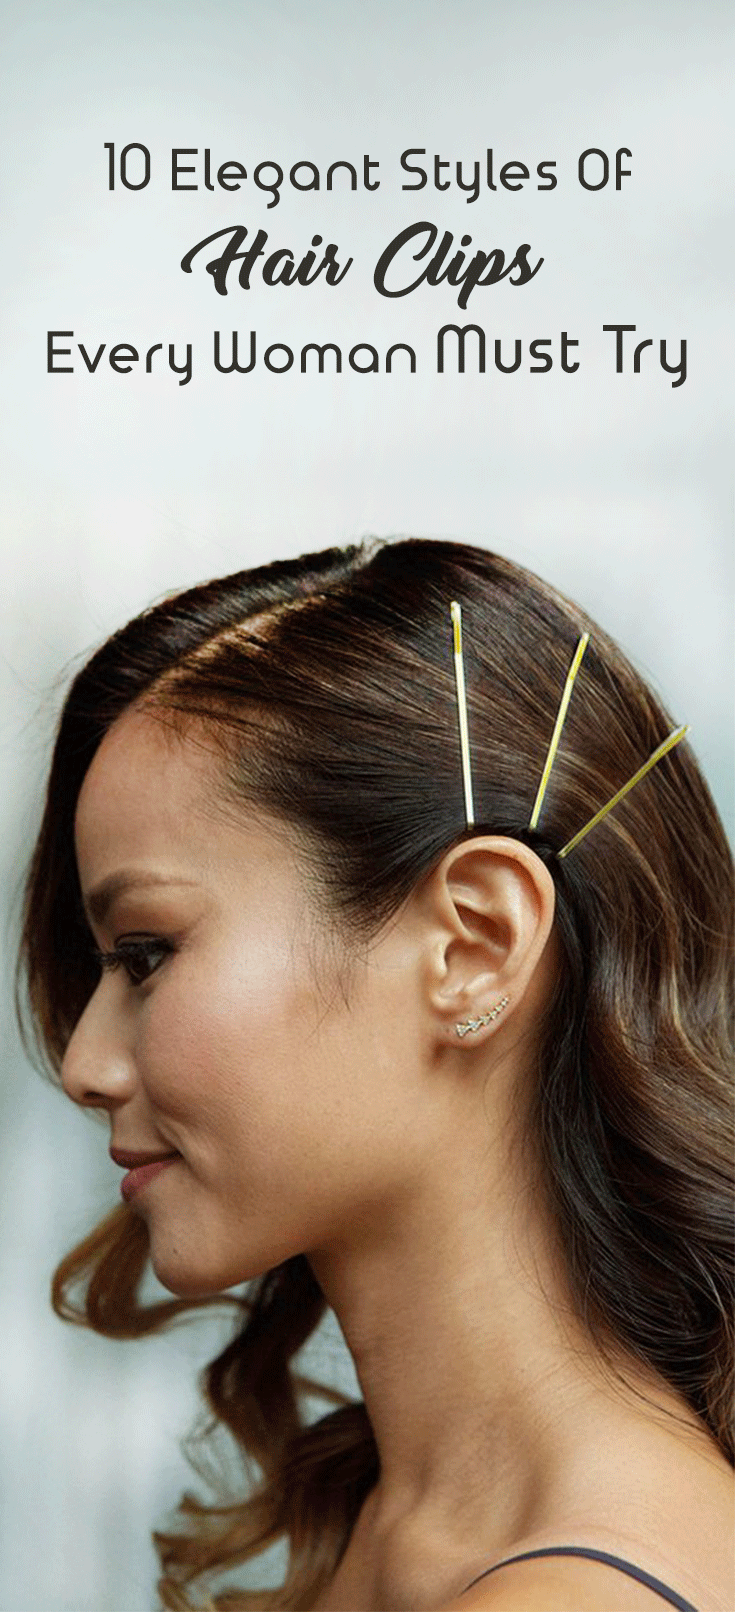 10 Elegant Styles Of Hair Clips Every Woman Must Try